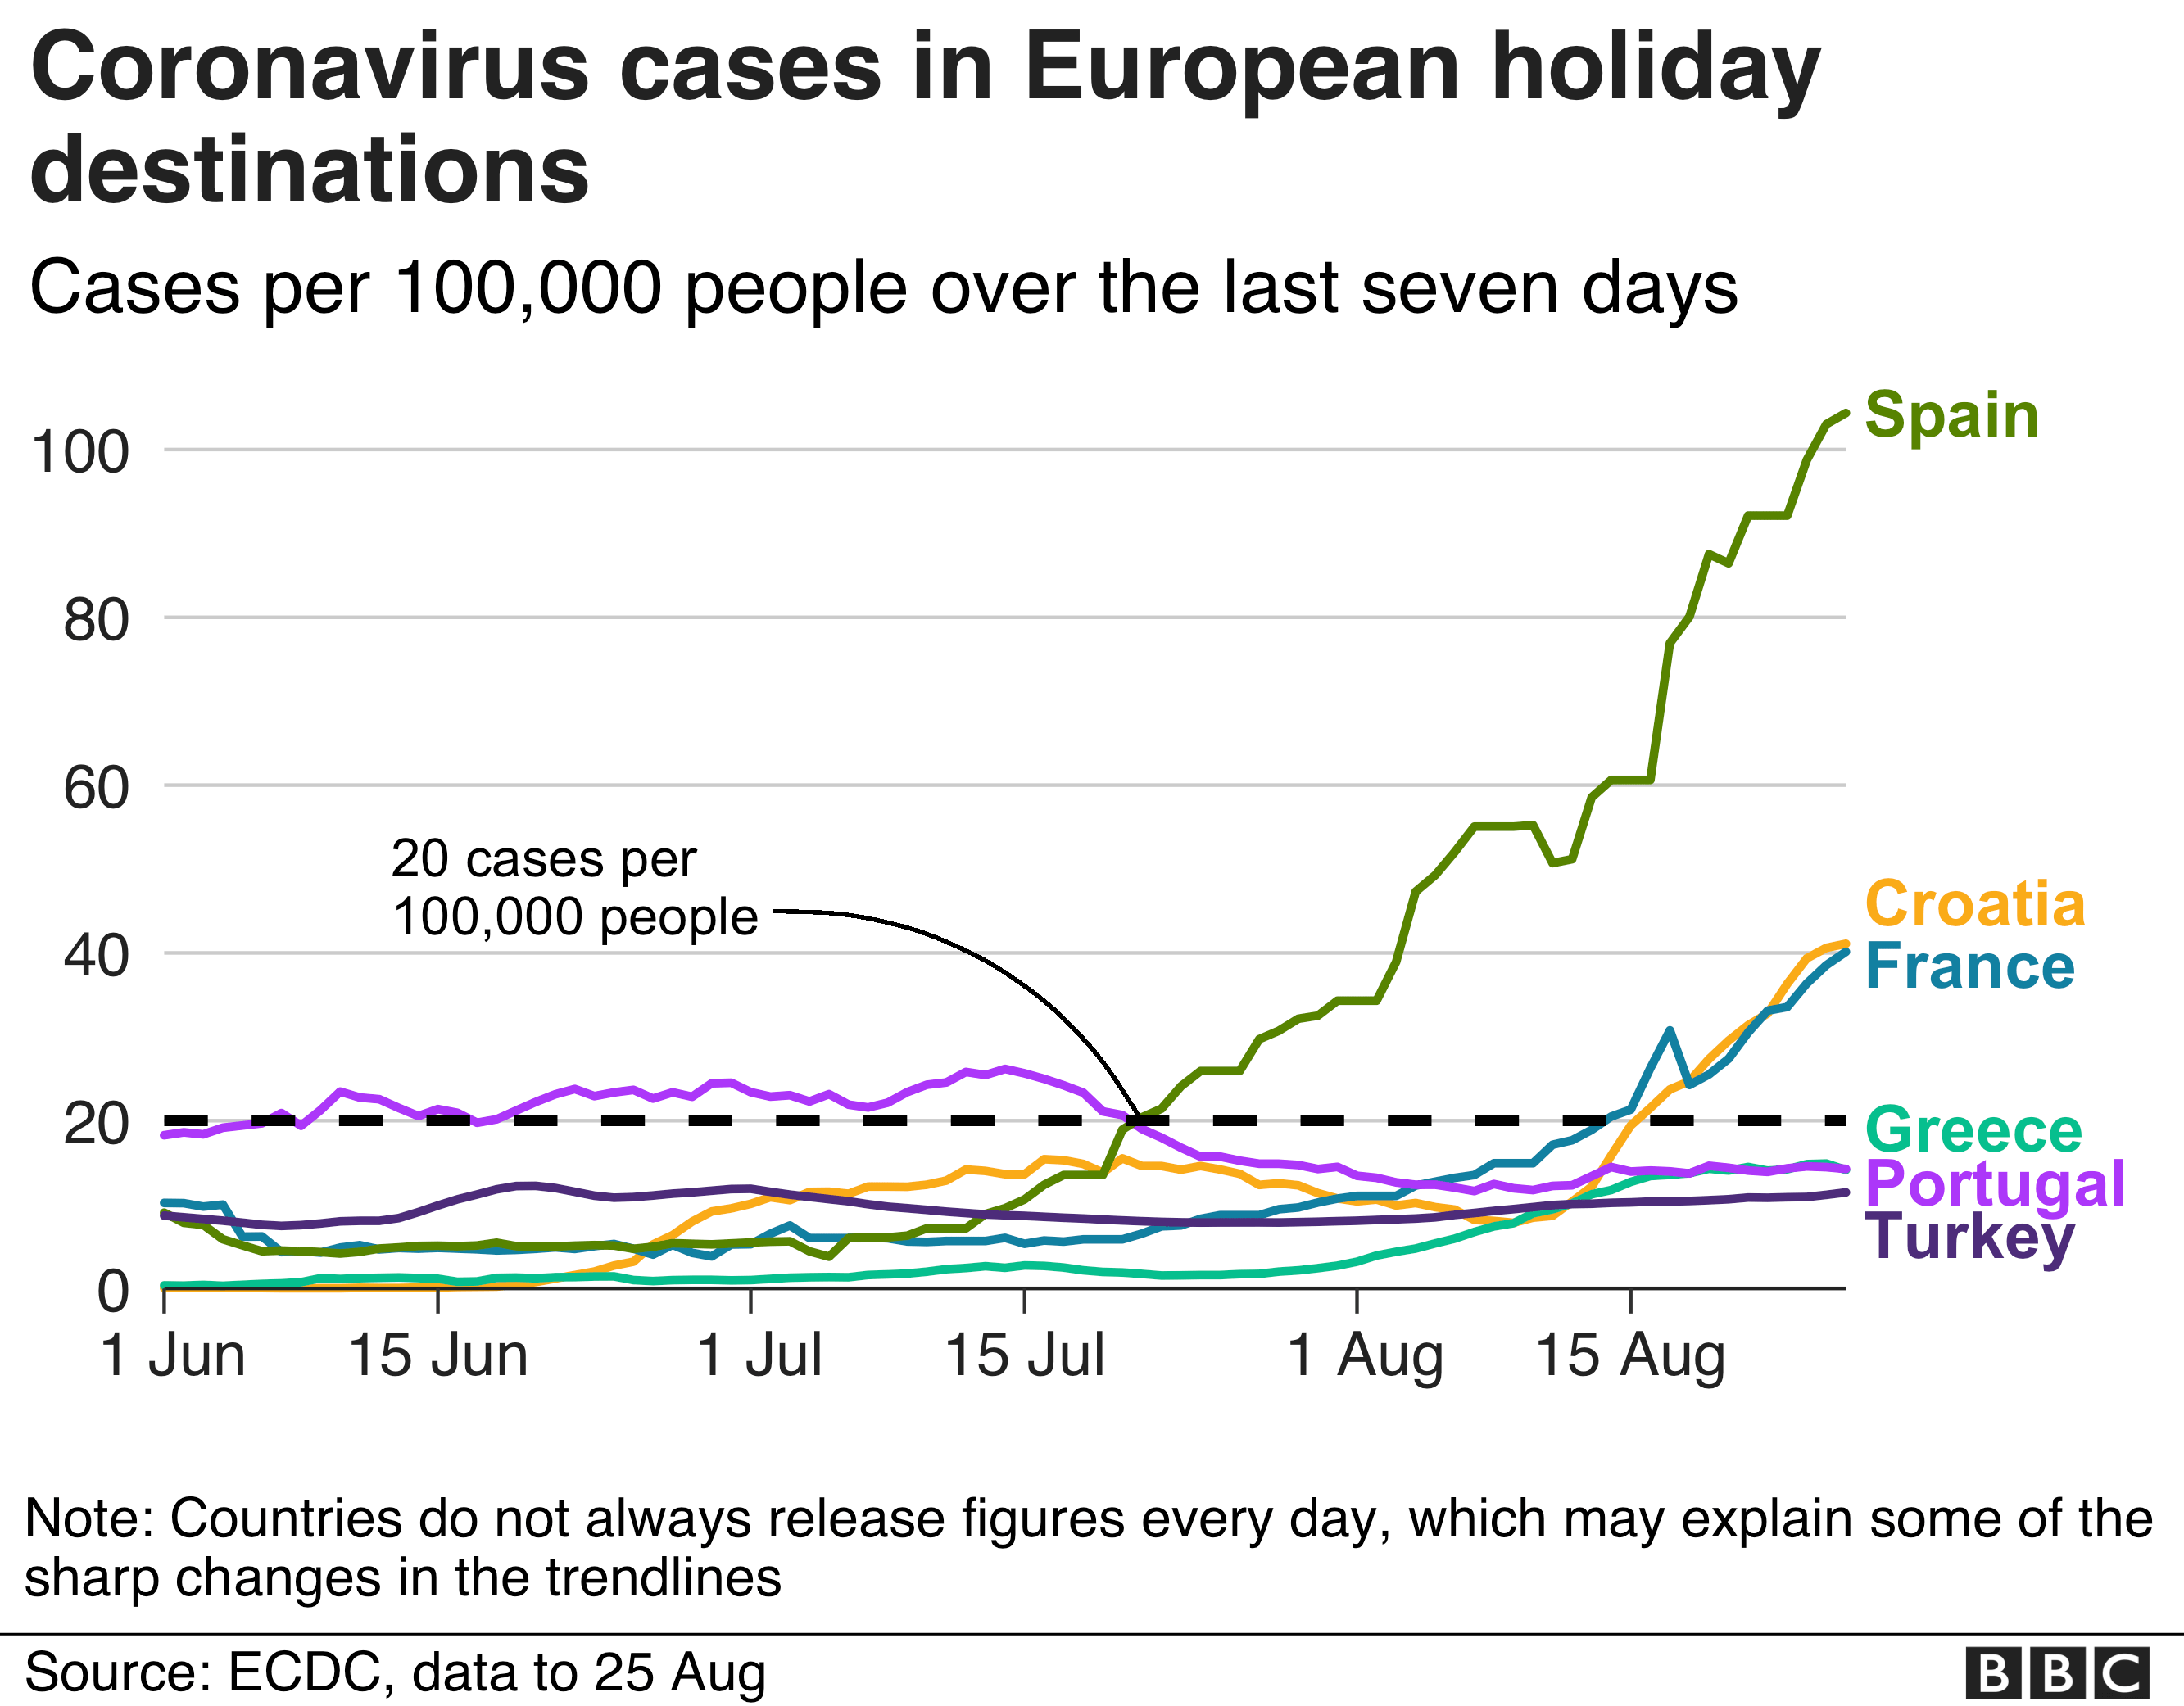 Infection rates for popular holiday destinations